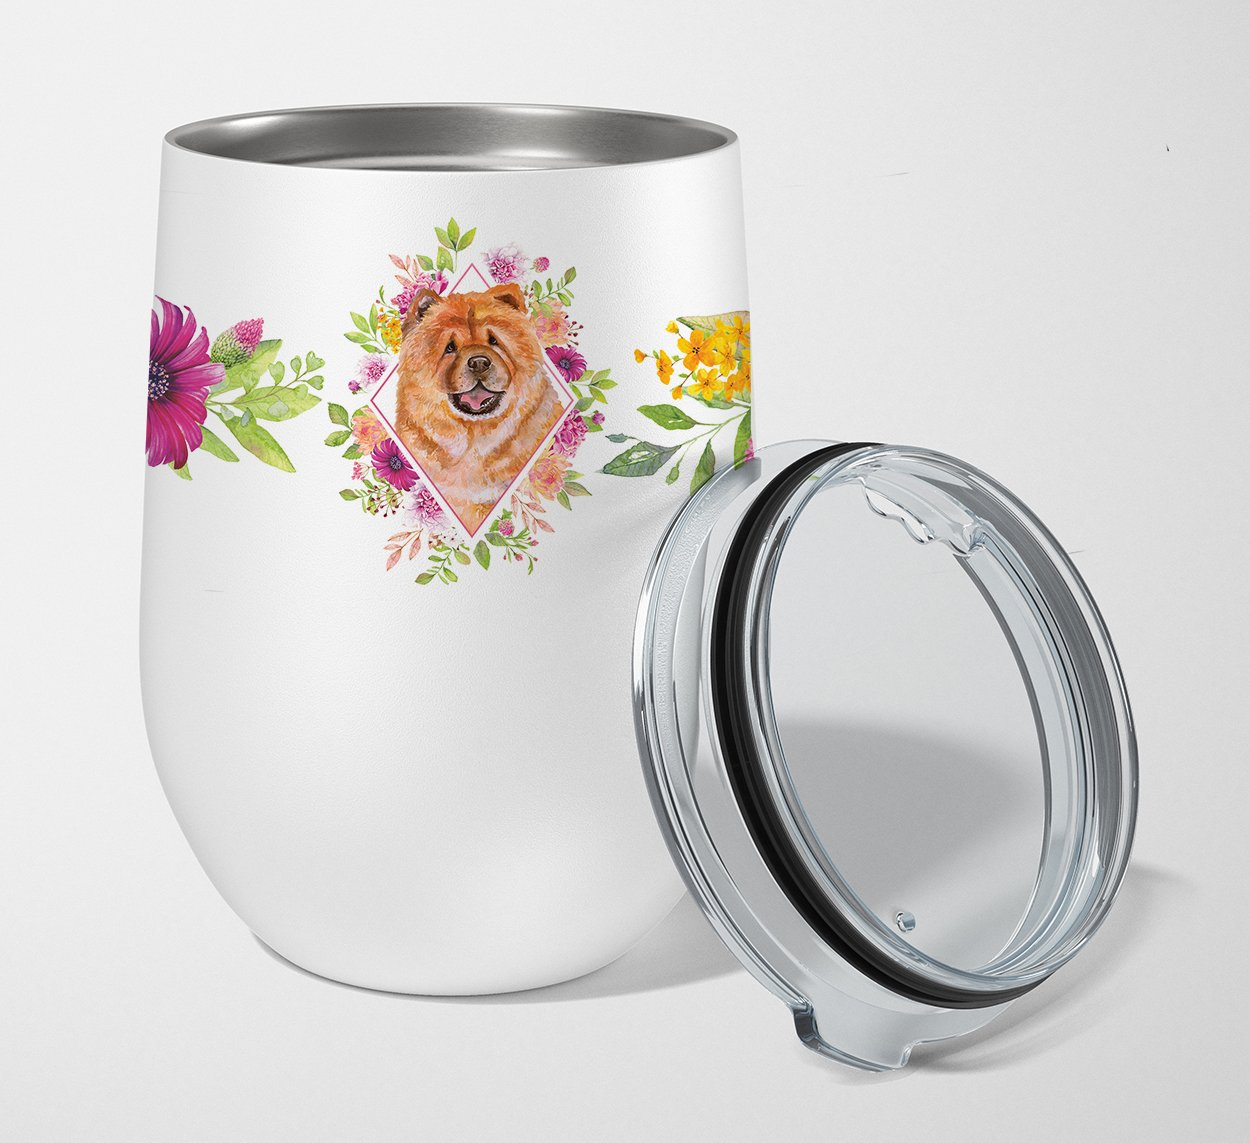 Chow Chow #1 Pink Flowers Stainless Steel 12 oz Stemless Wine Glass CK4131TBL12 by Caroline's Treasures